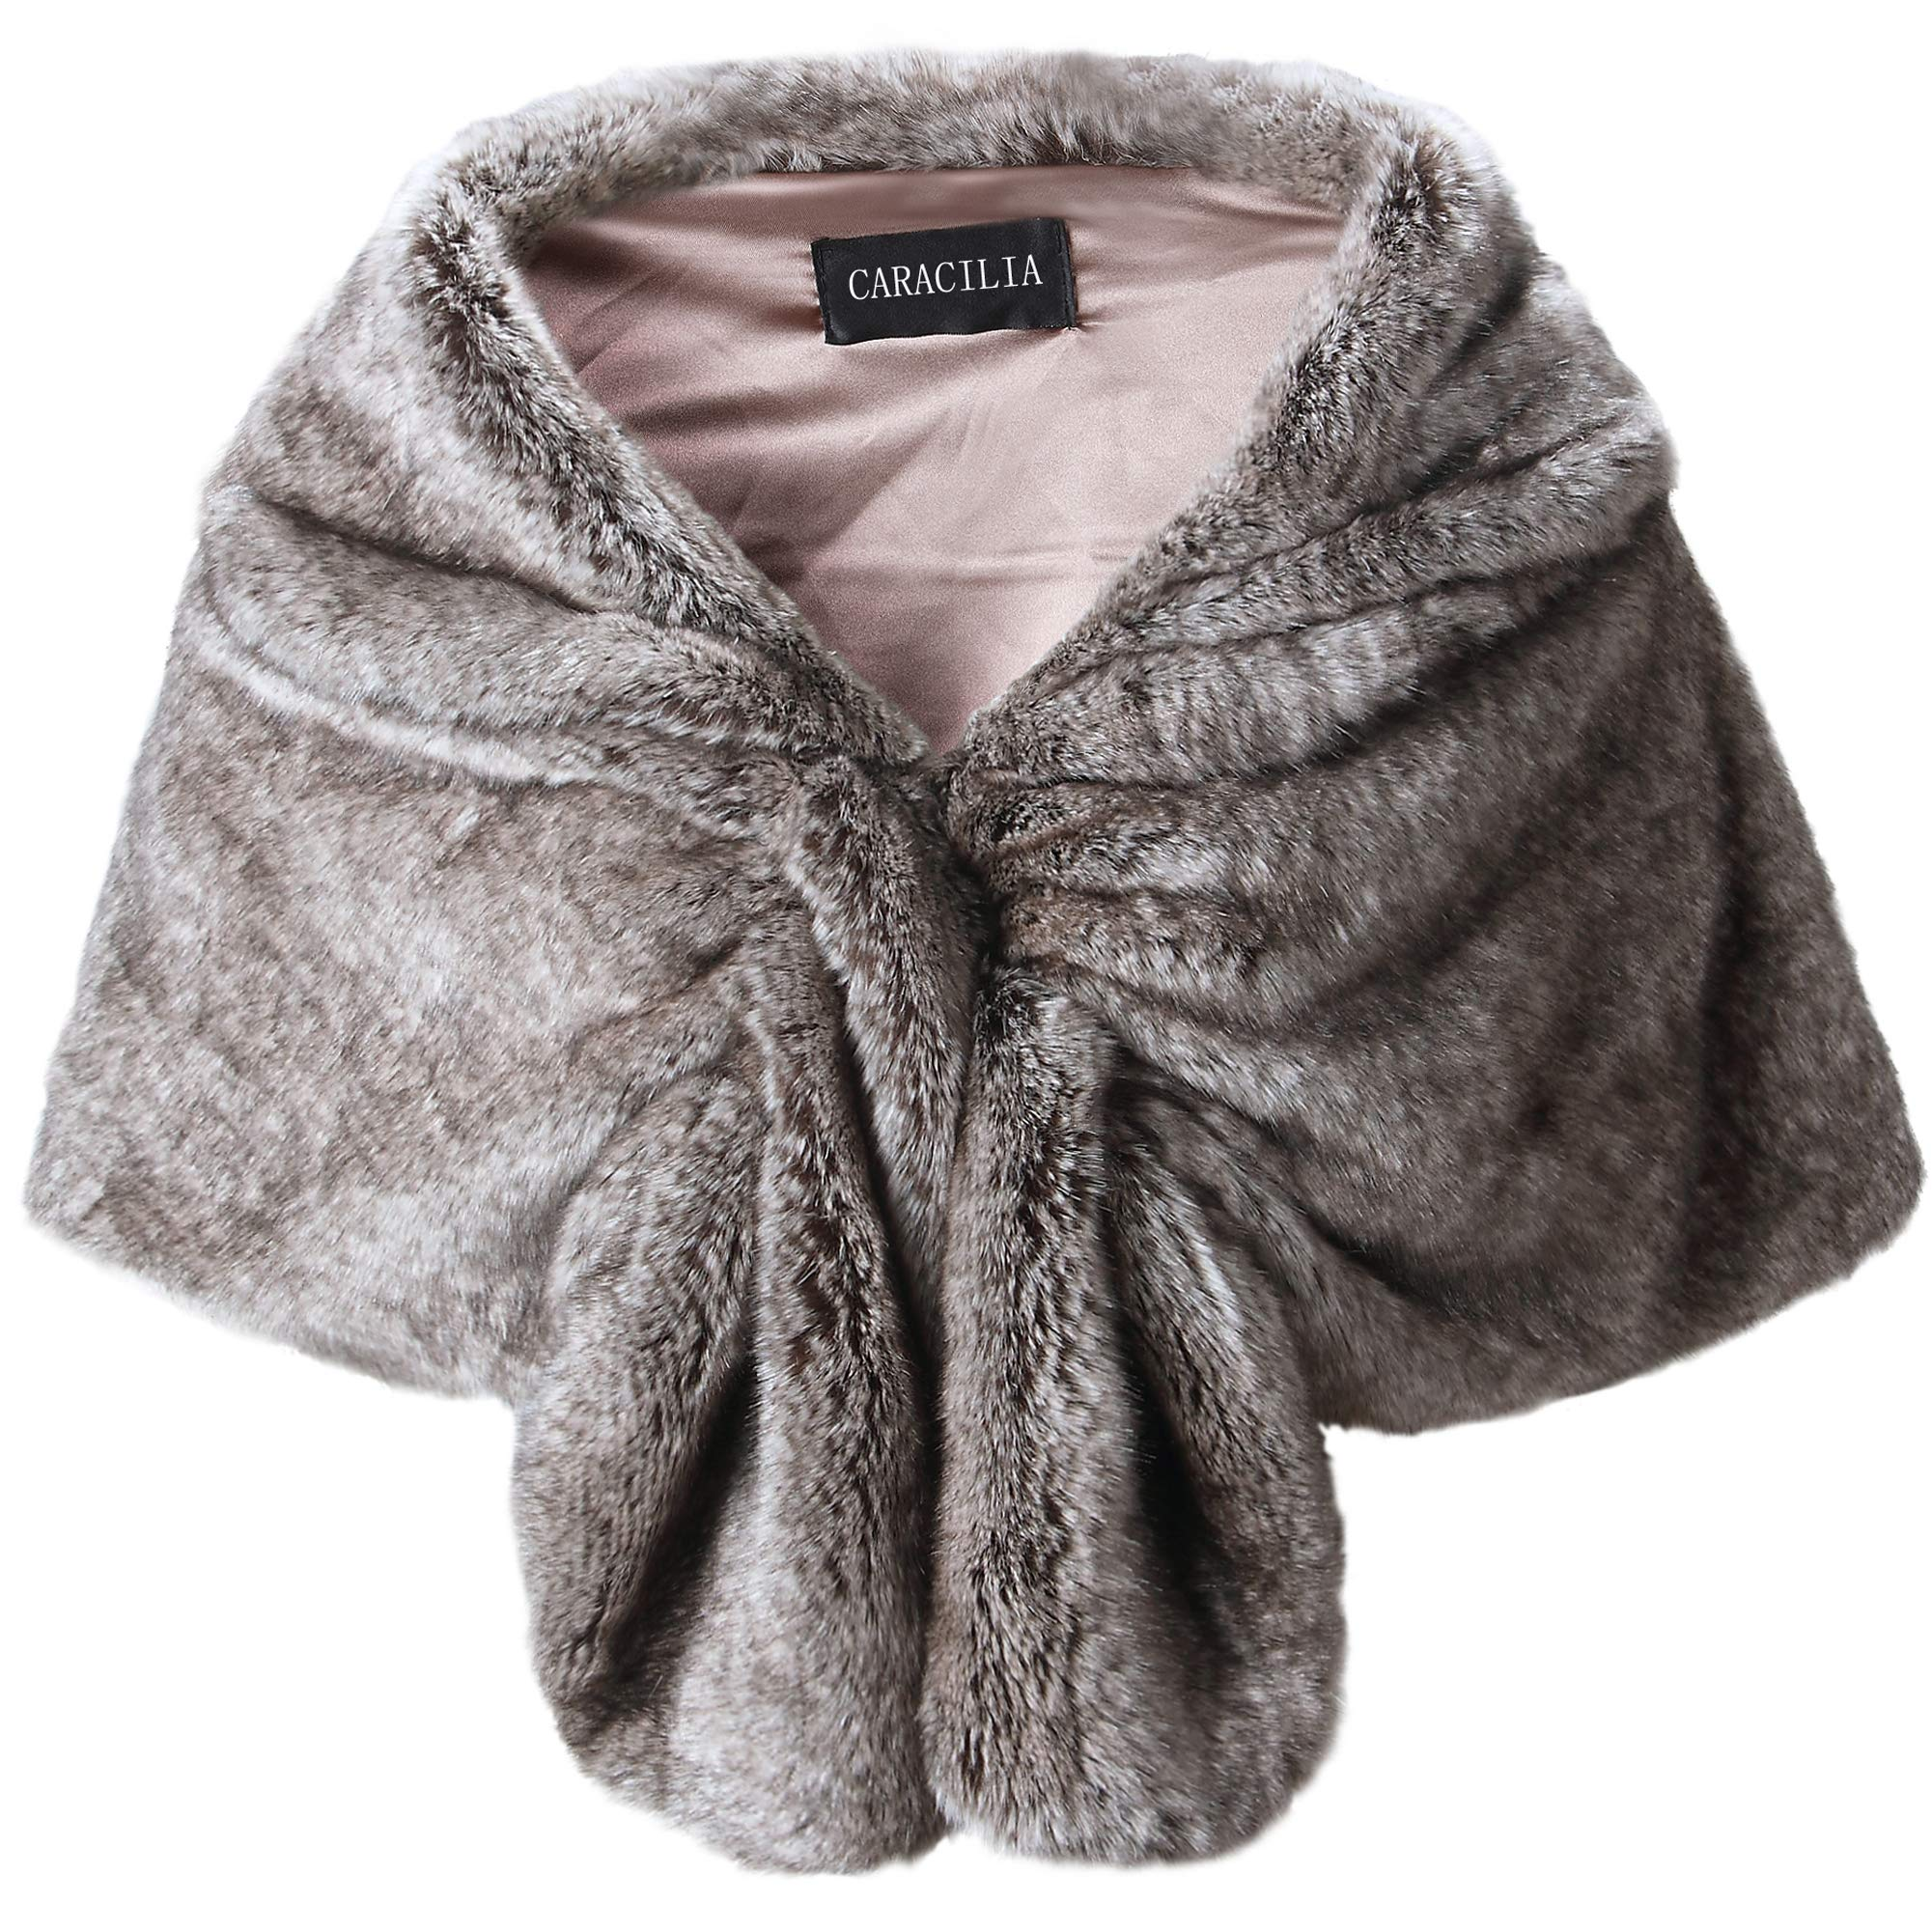 Caracilia Elegant Bridal Wedding Faux Fur Shawl Stole Wrap Shrug CA95 , Rabbit Fur Grey , Large by Caracilia (Image #1)